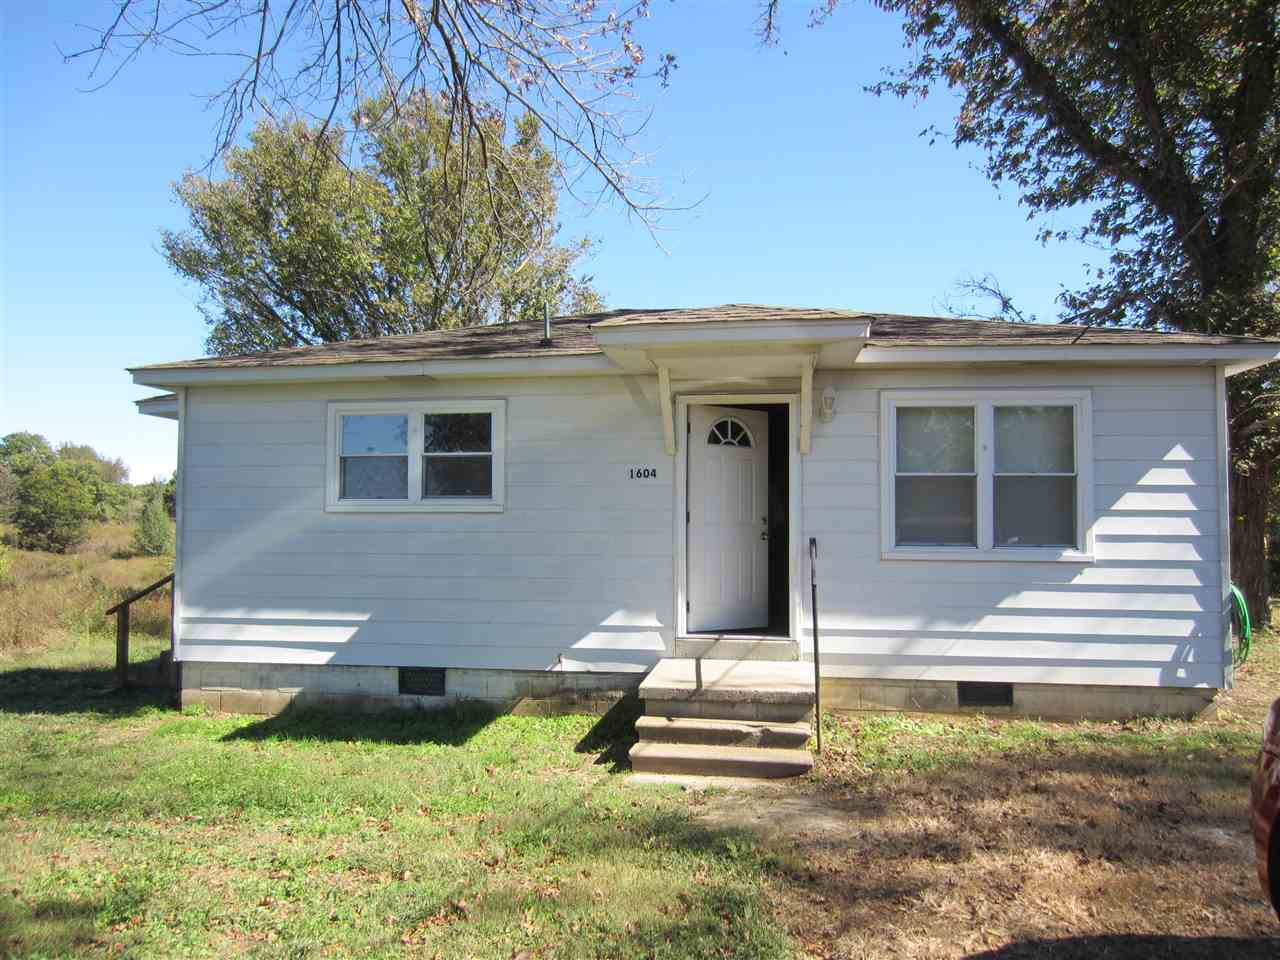 1604 Dolan, Unincorporated, TN 38023